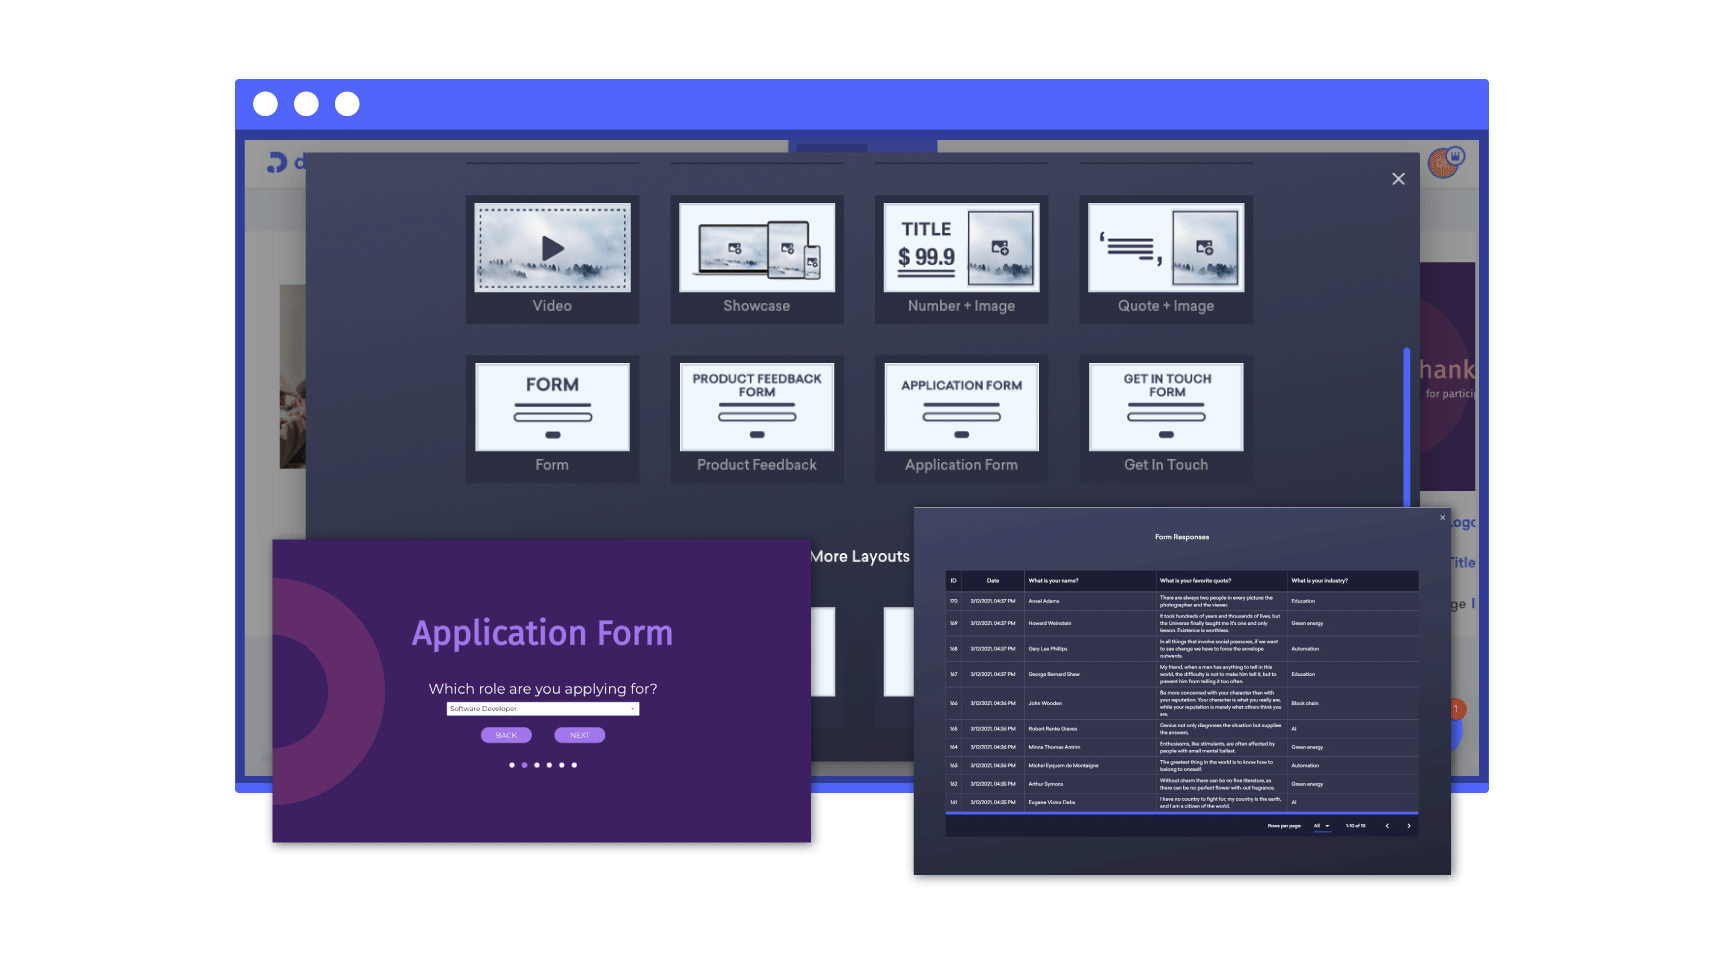 a form slide and response dashboard of decktopus